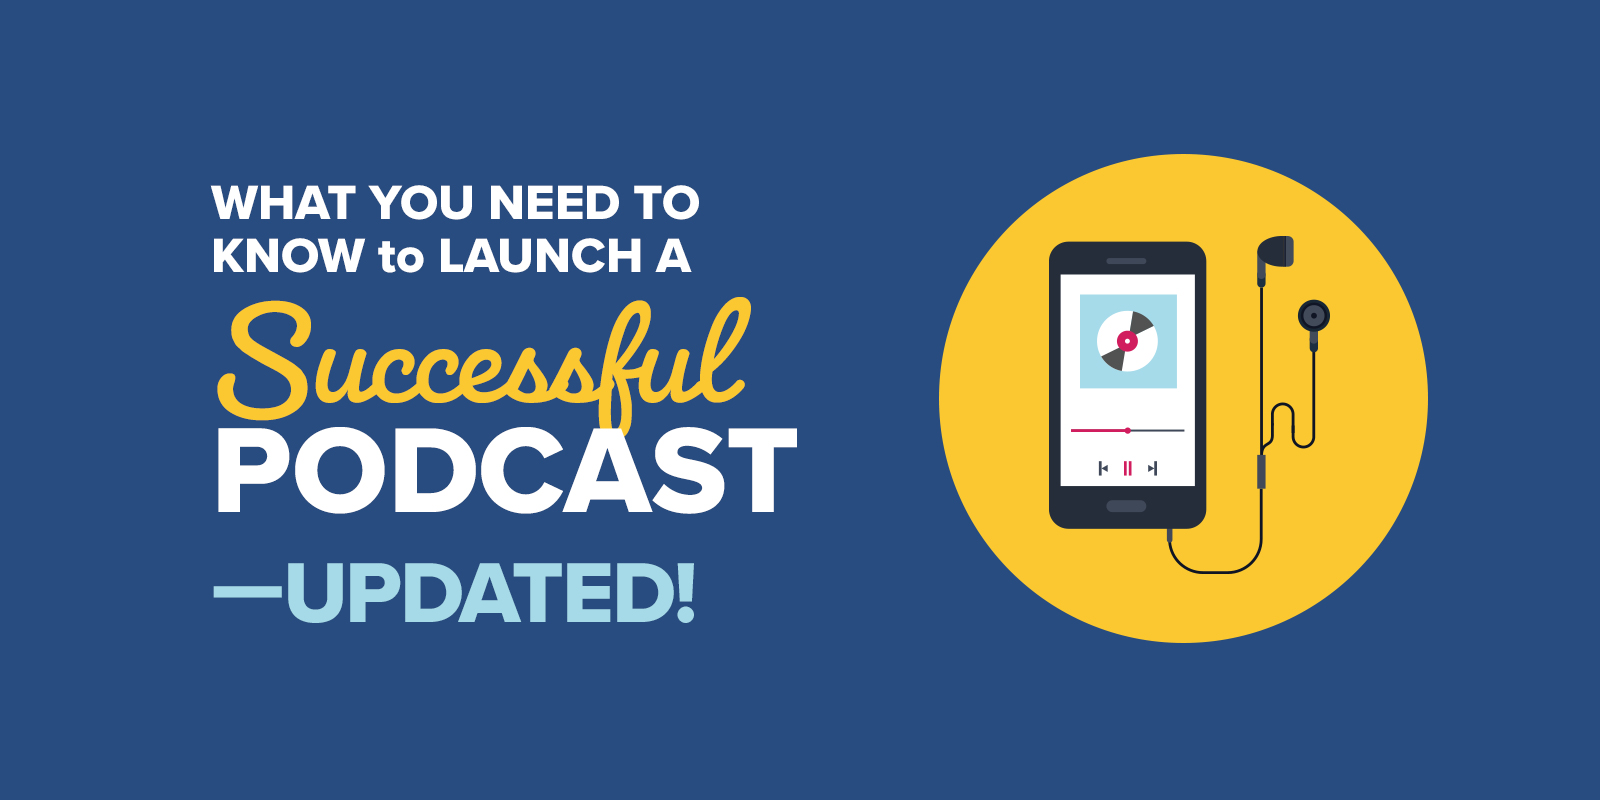 What You Need to Know to Launch a Successful Podcast—UPDATED!